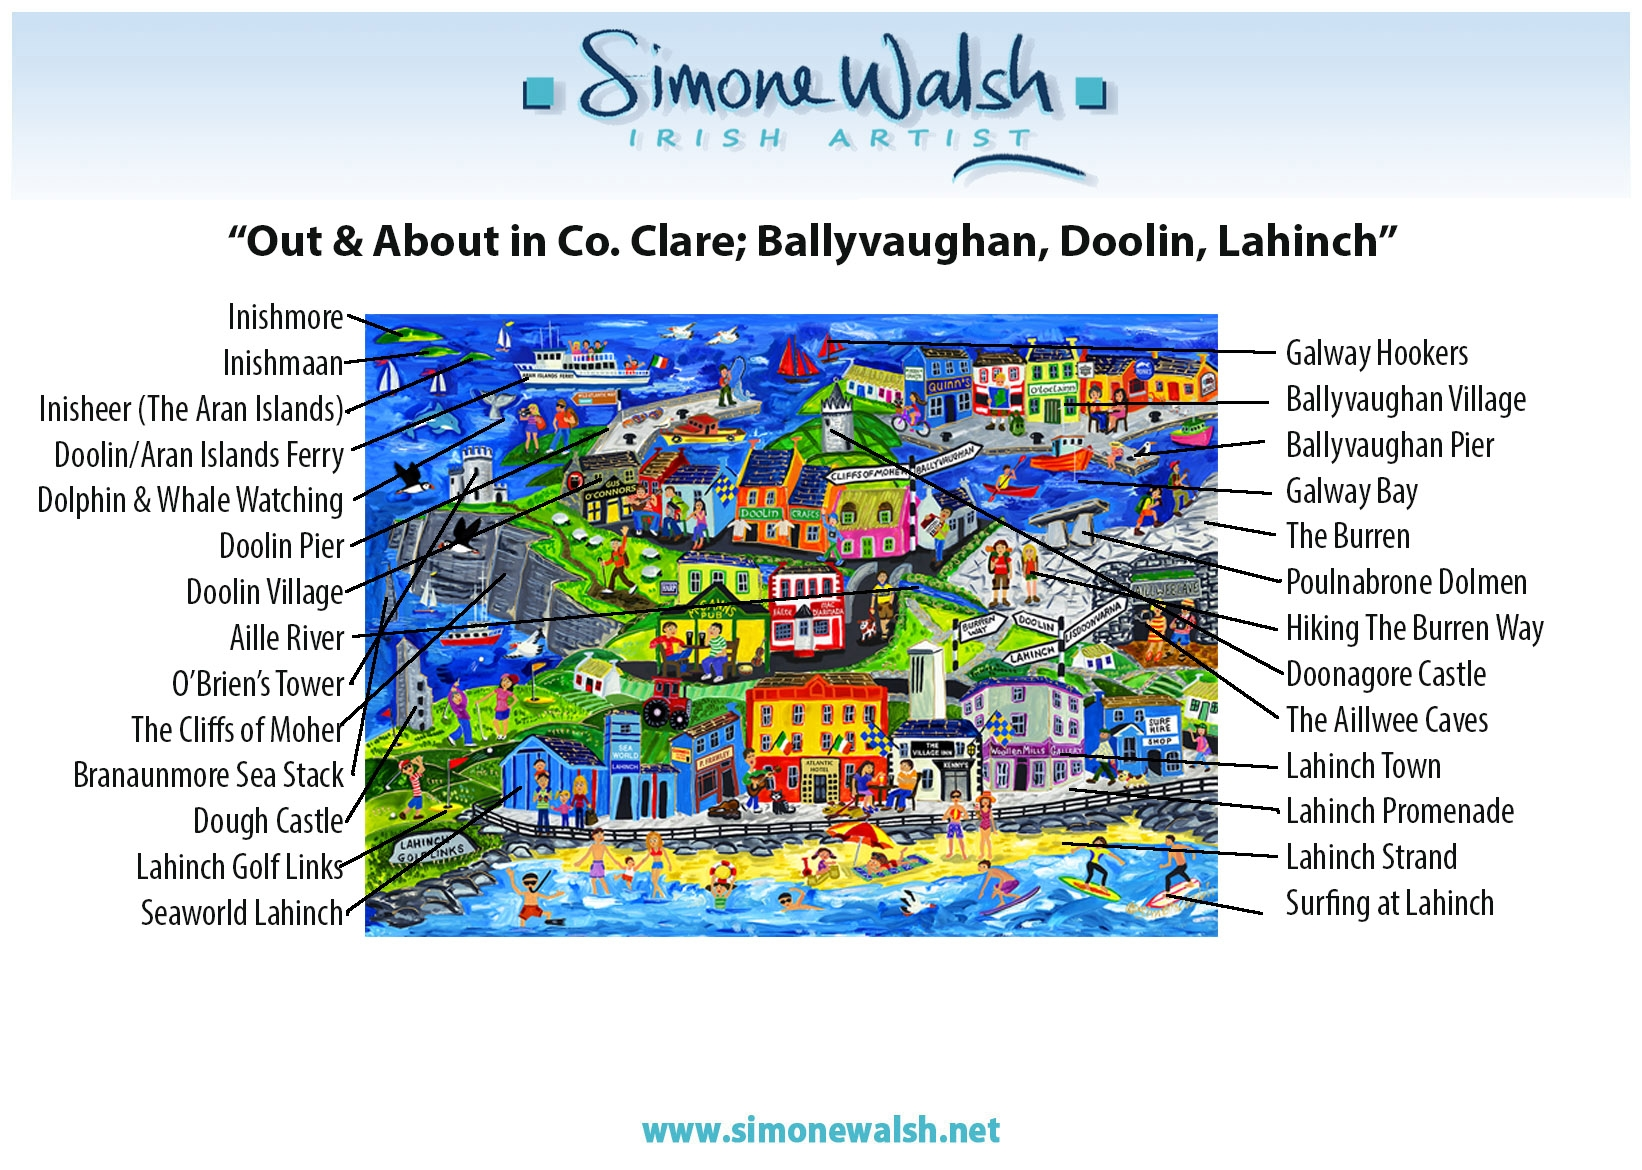 Map Of Ireland Showing Doolin.Out About In Co Clare Ballyvaughan Doolin Lahinch